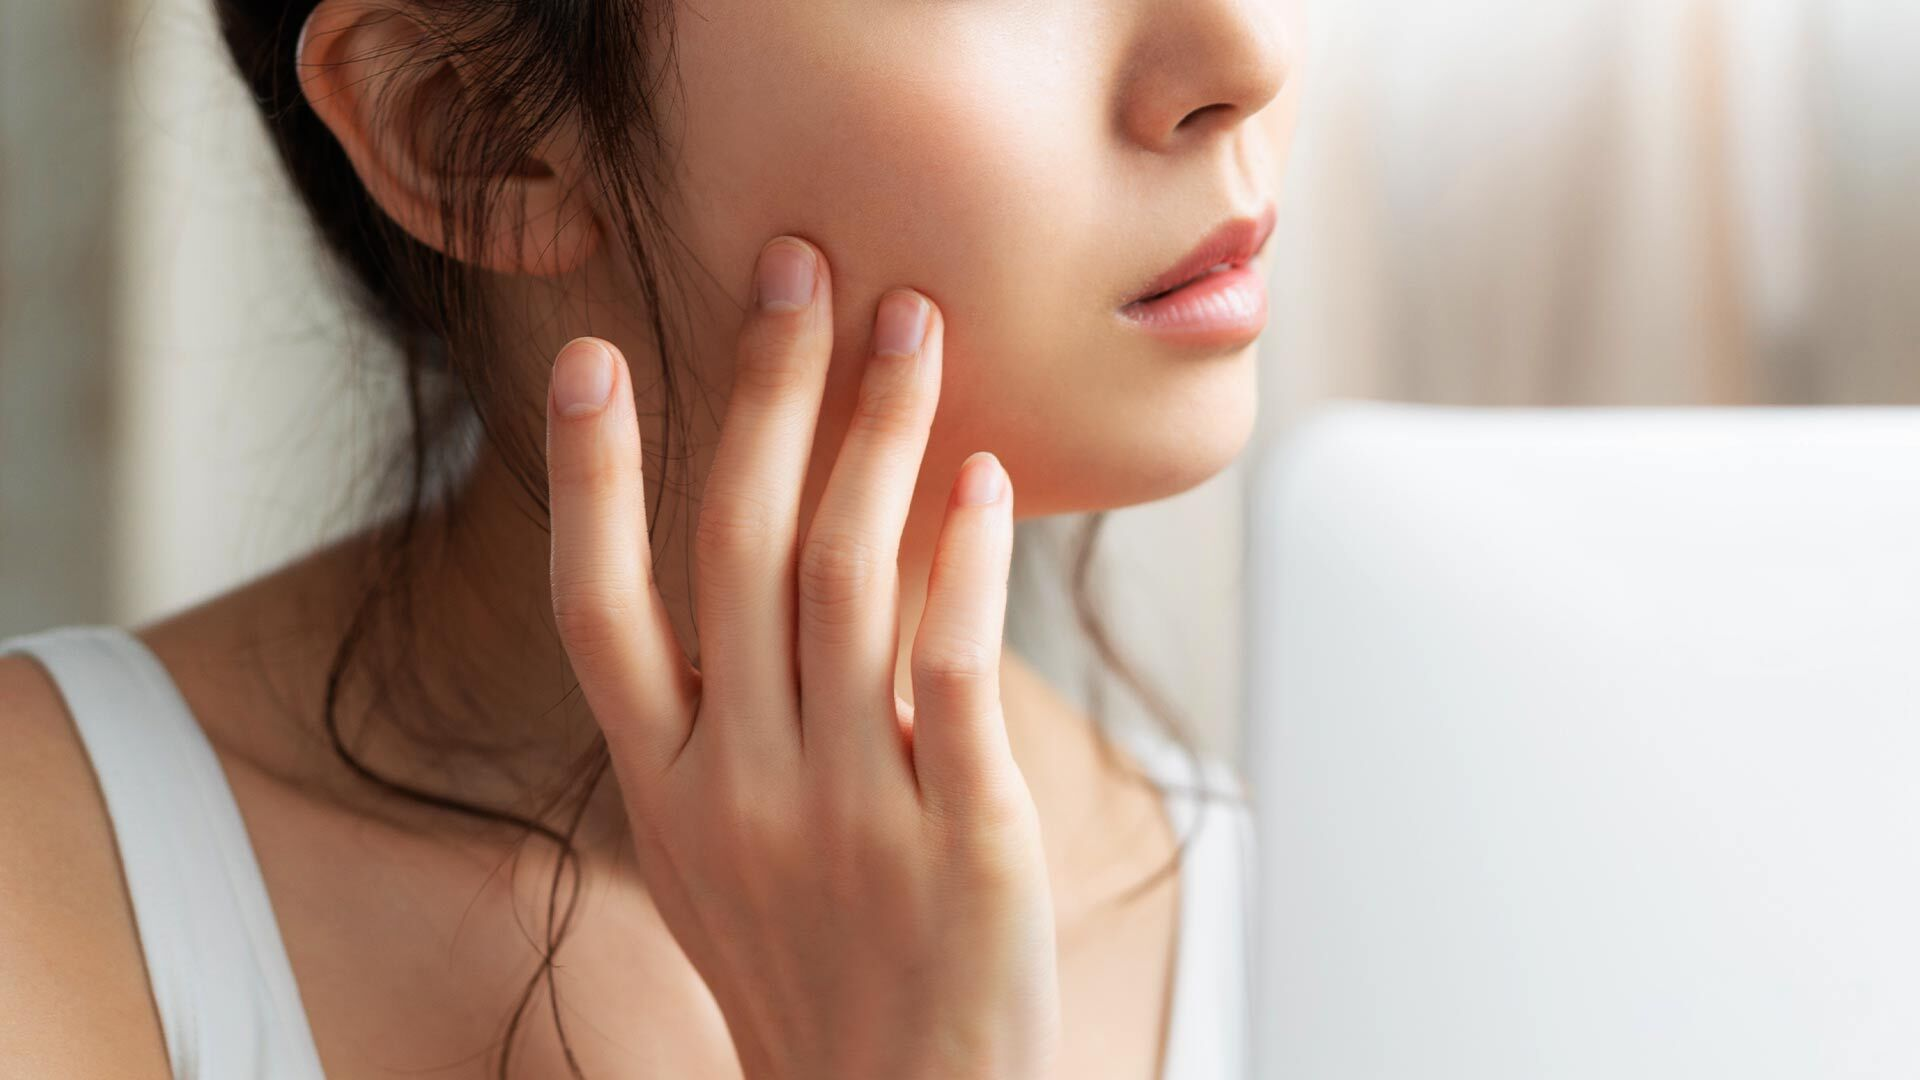 Makeup for acne prone skin tips